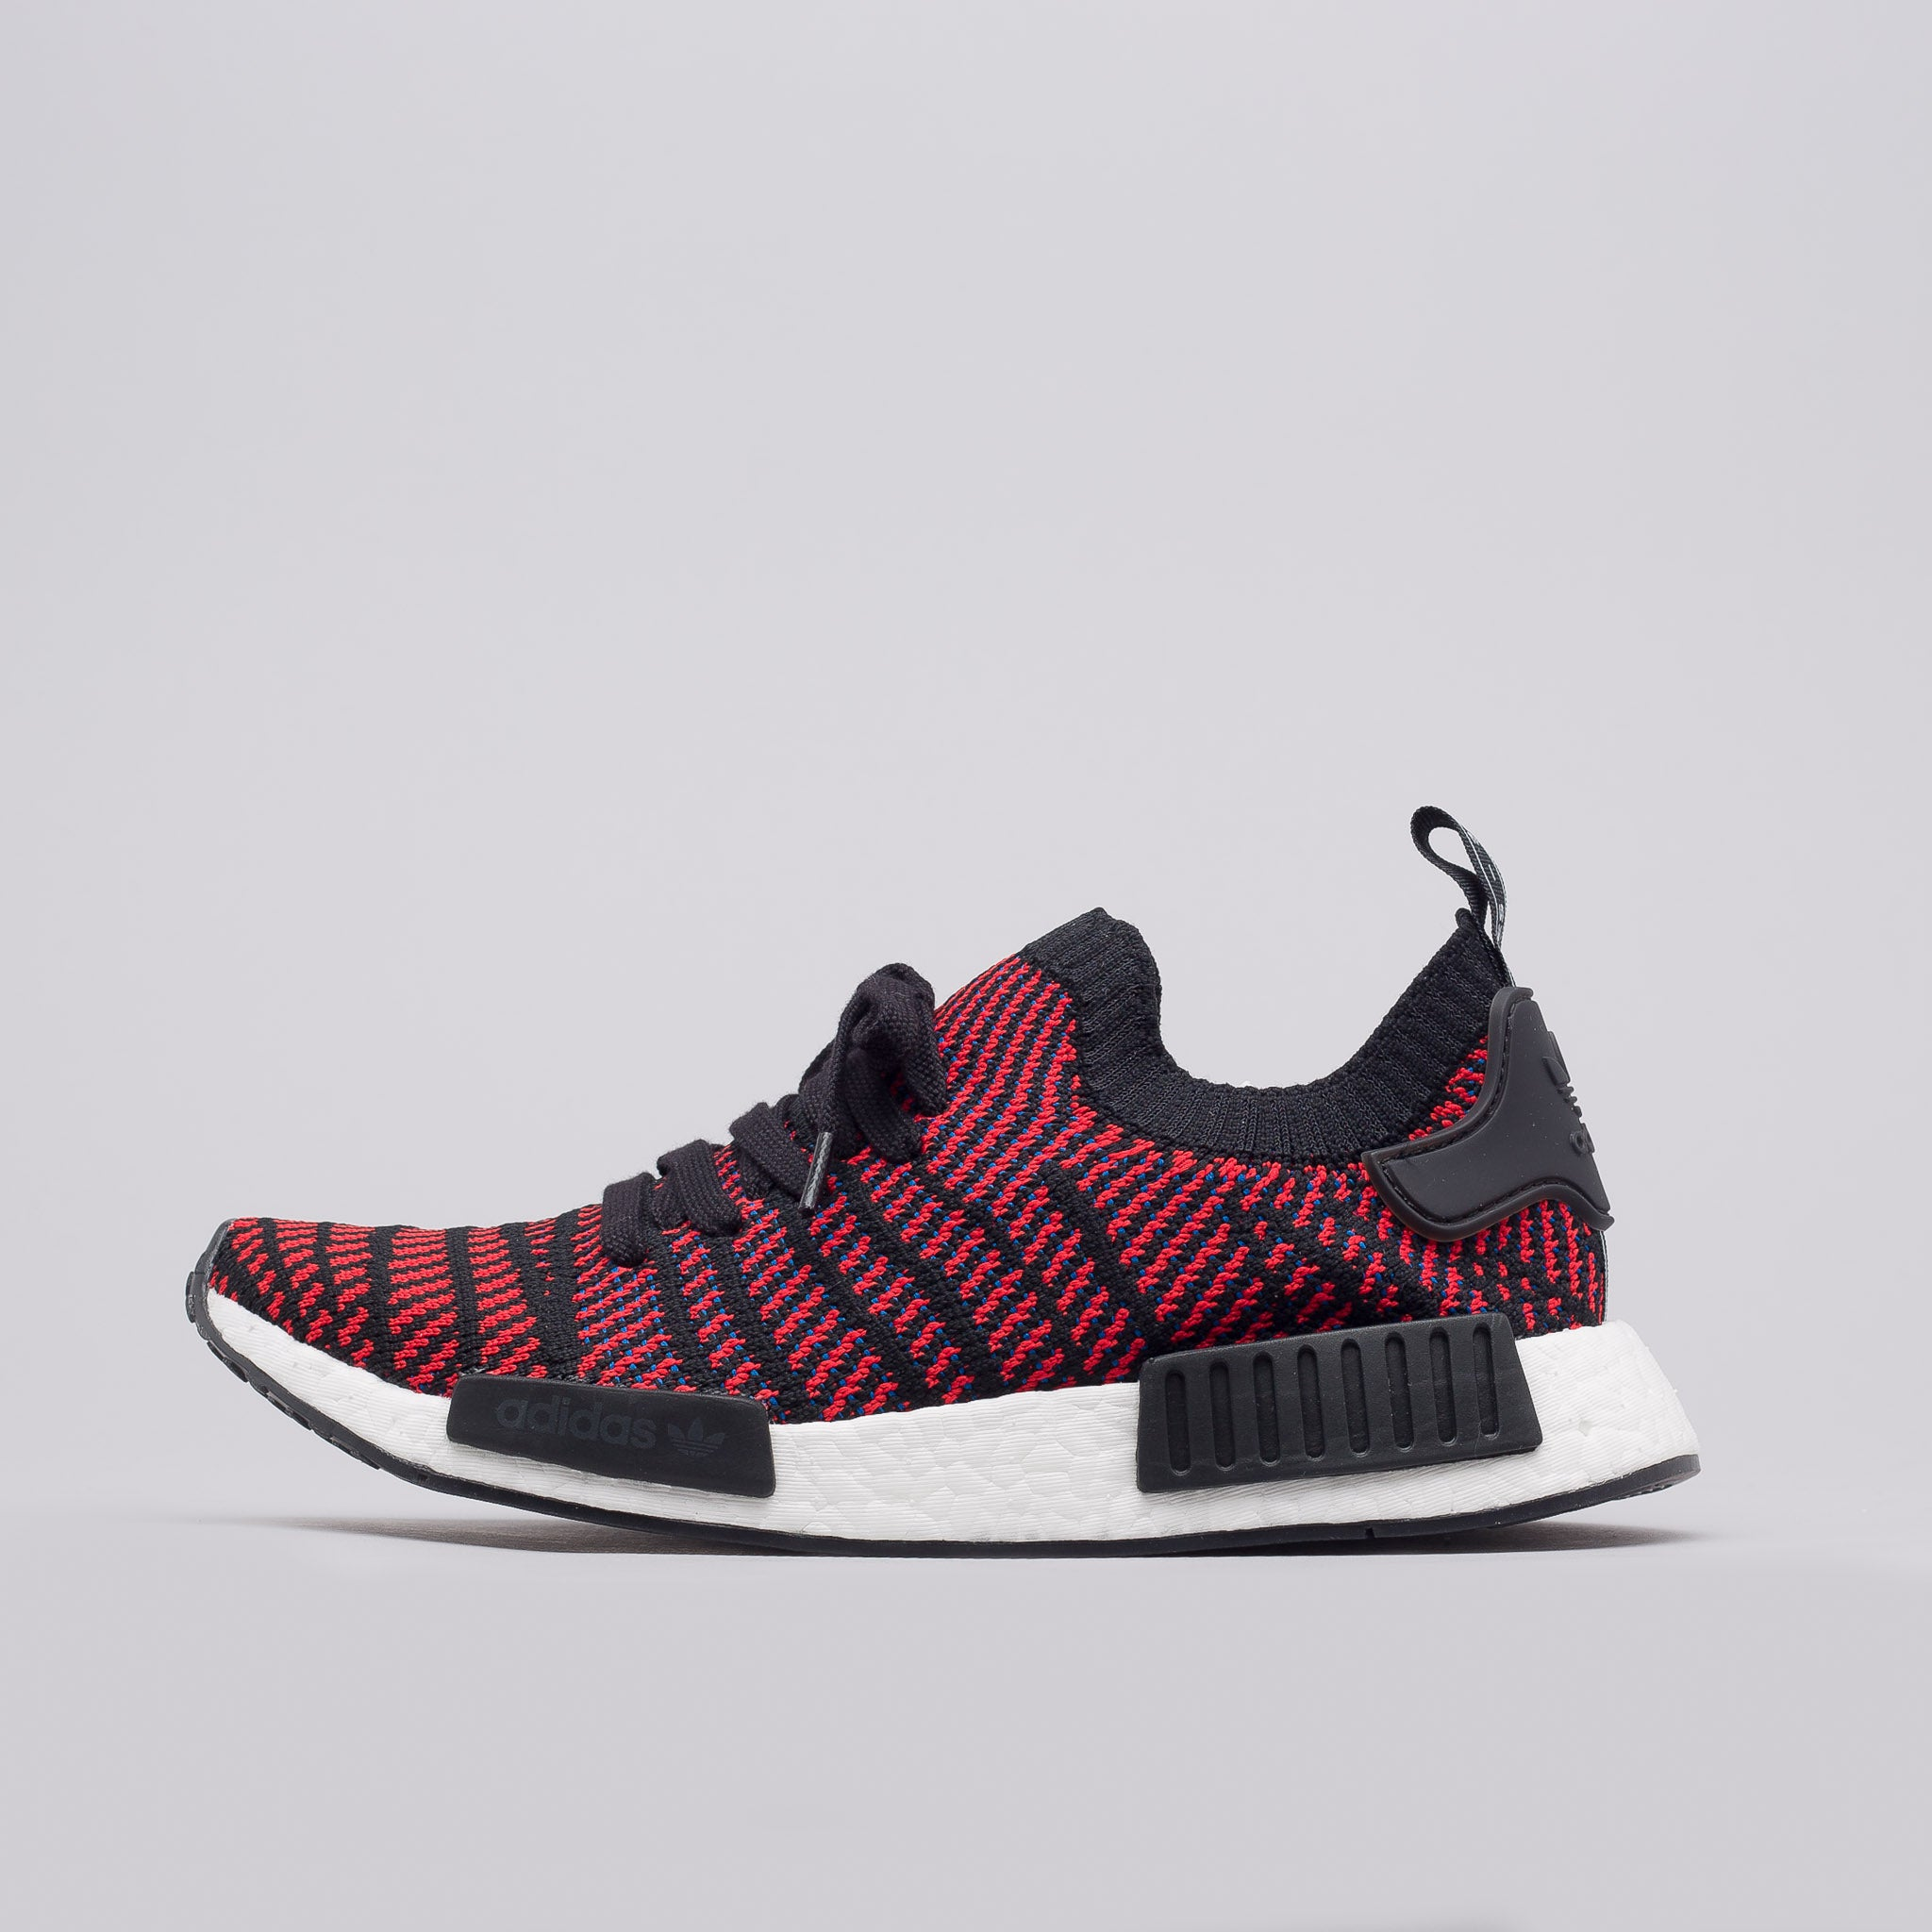 TIPS / THINGS TO KNOW WHEN PURCHASING ADIDAS NMD R1 PK